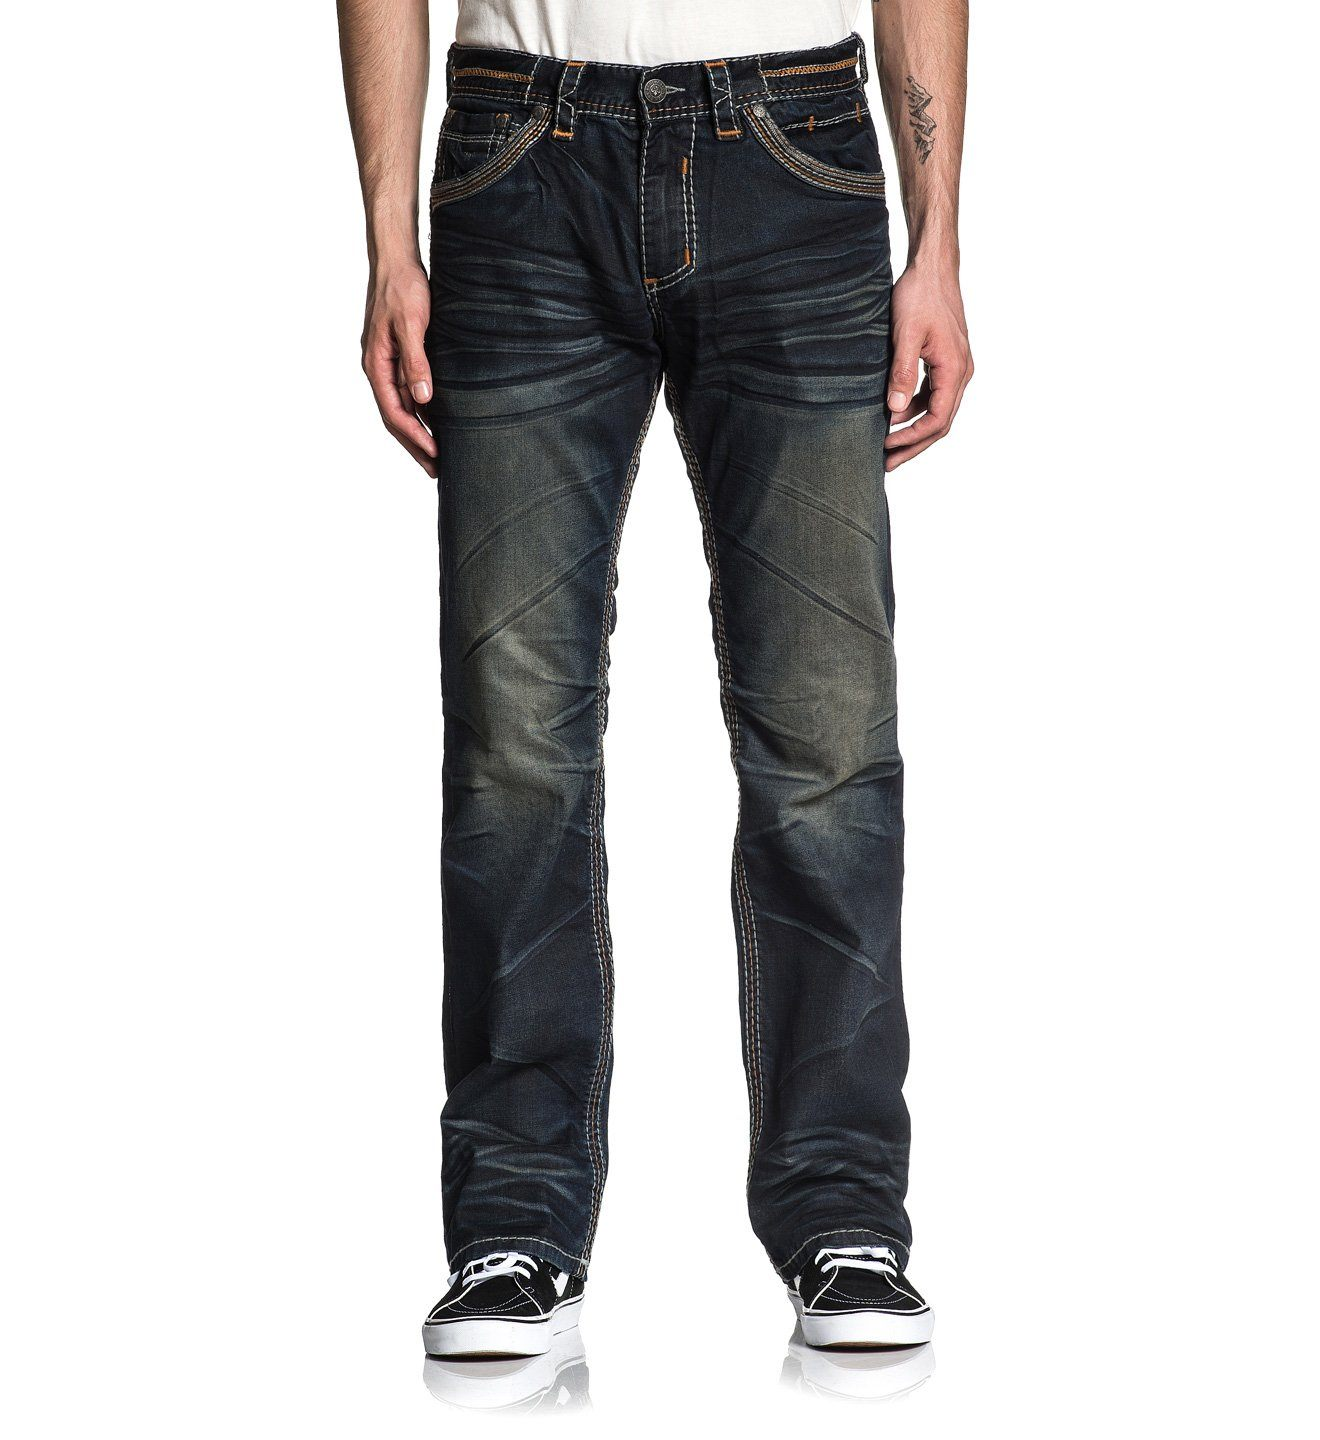 Blake Fleur Spago - Mens Denim Bottoms - Affliction Clothing